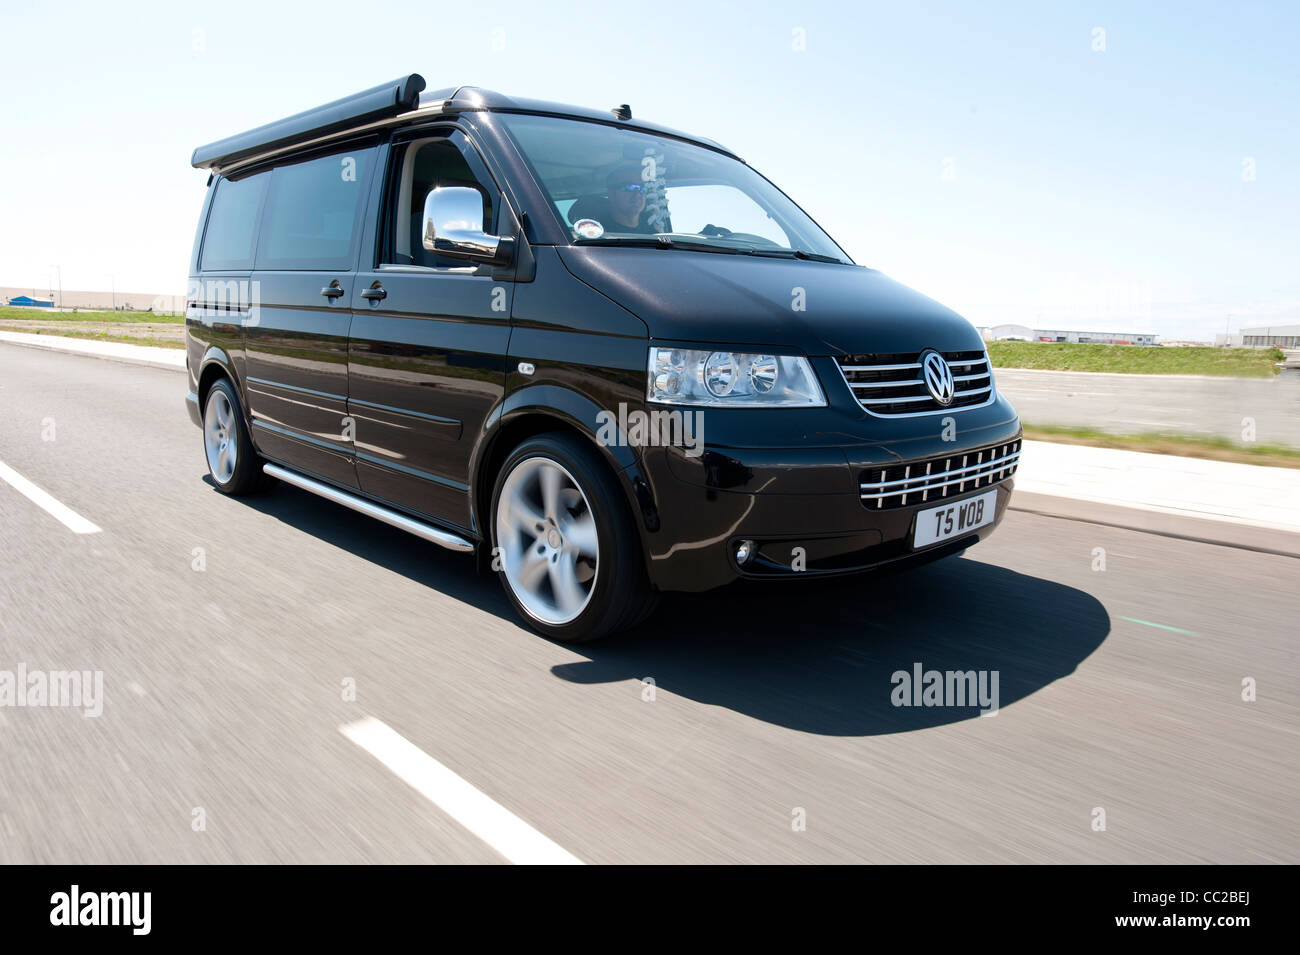 volkswagen vw t5 california wohnmobil fahren stockfoto bild 41849546 alamy. Black Bedroom Furniture Sets. Home Design Ideas